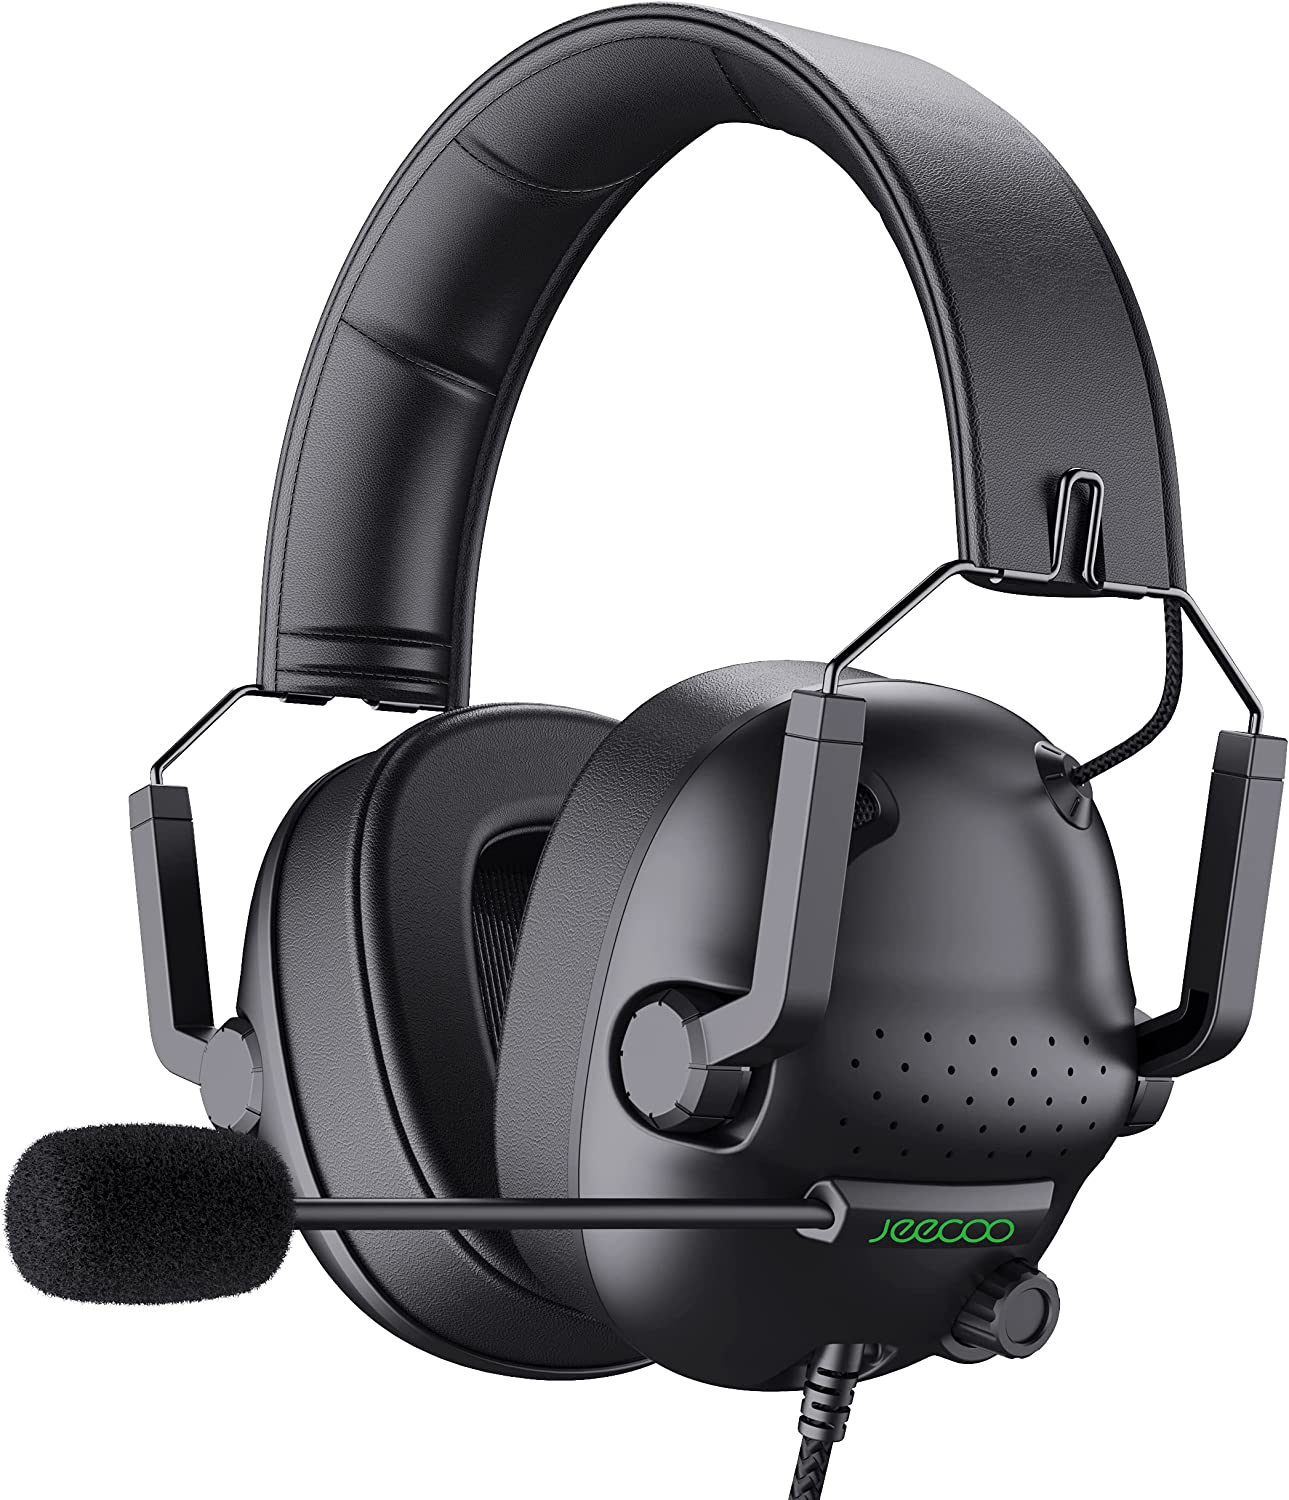 Jeecoo J50 Stereo Gaming Sales results No. 1 Headset Microphone Tampa Mall Folding Clear with